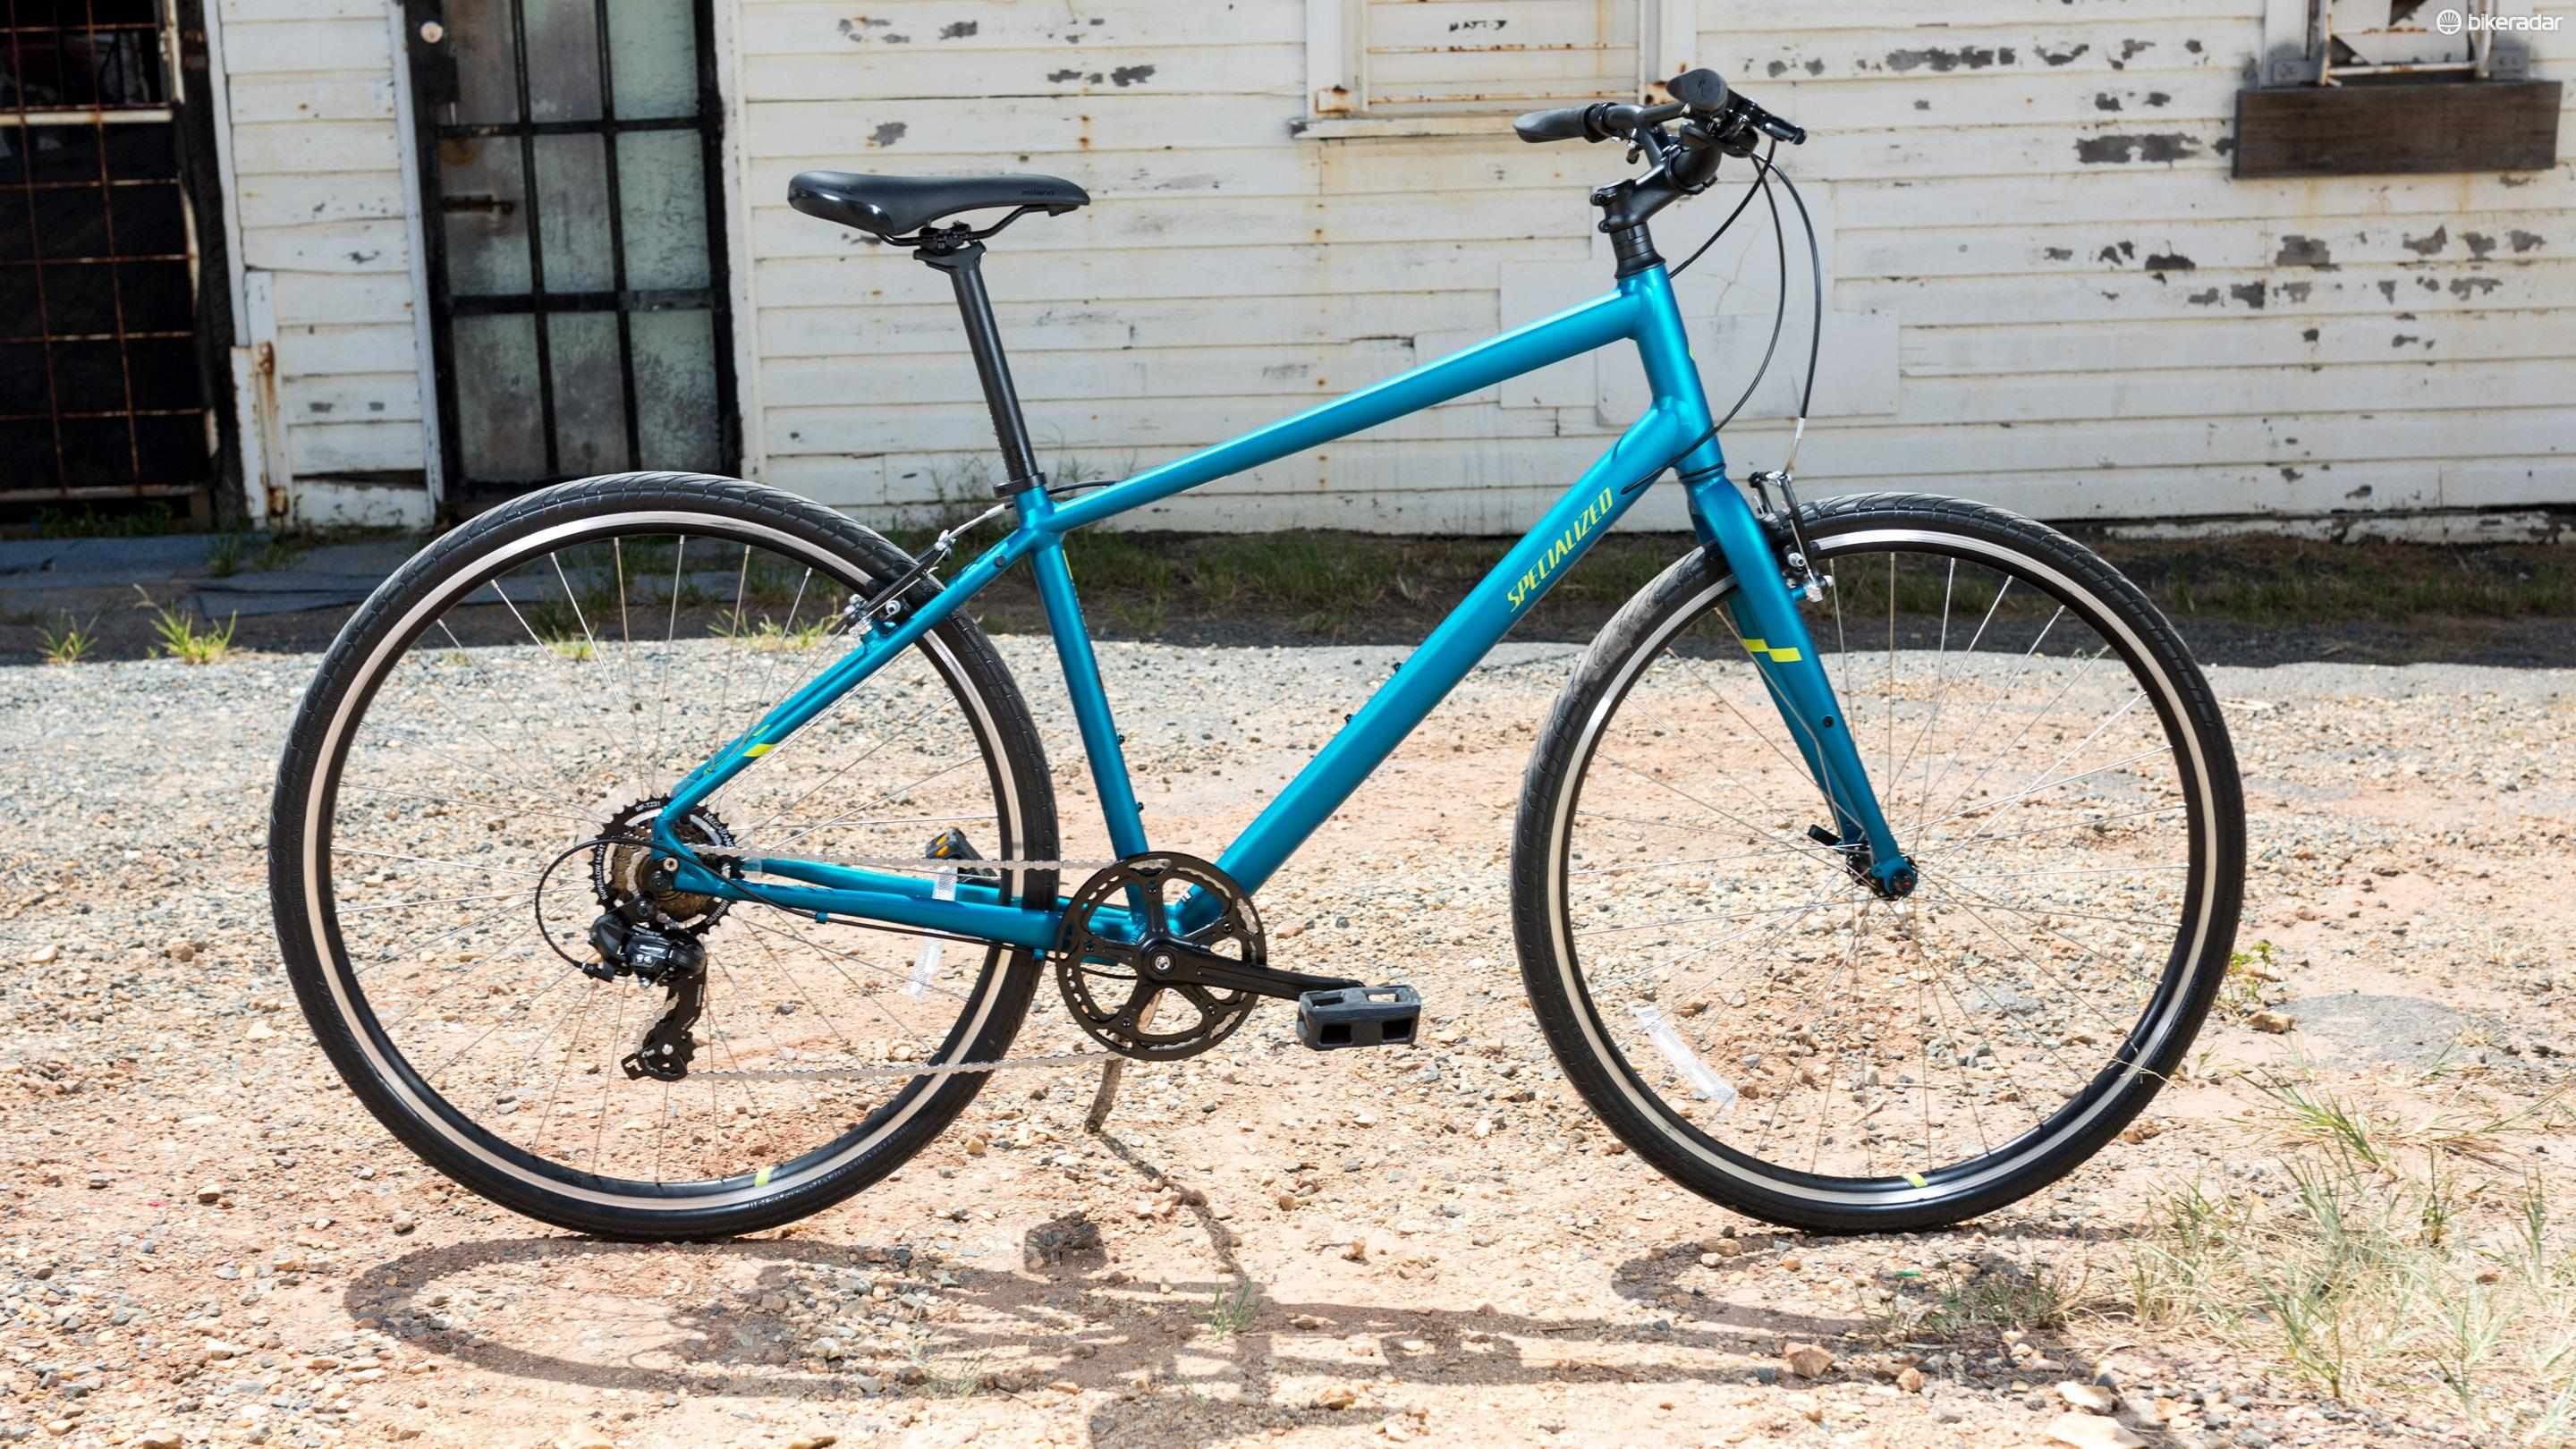 Specialized's Alibi is a fuss-free fitness or commuter bike